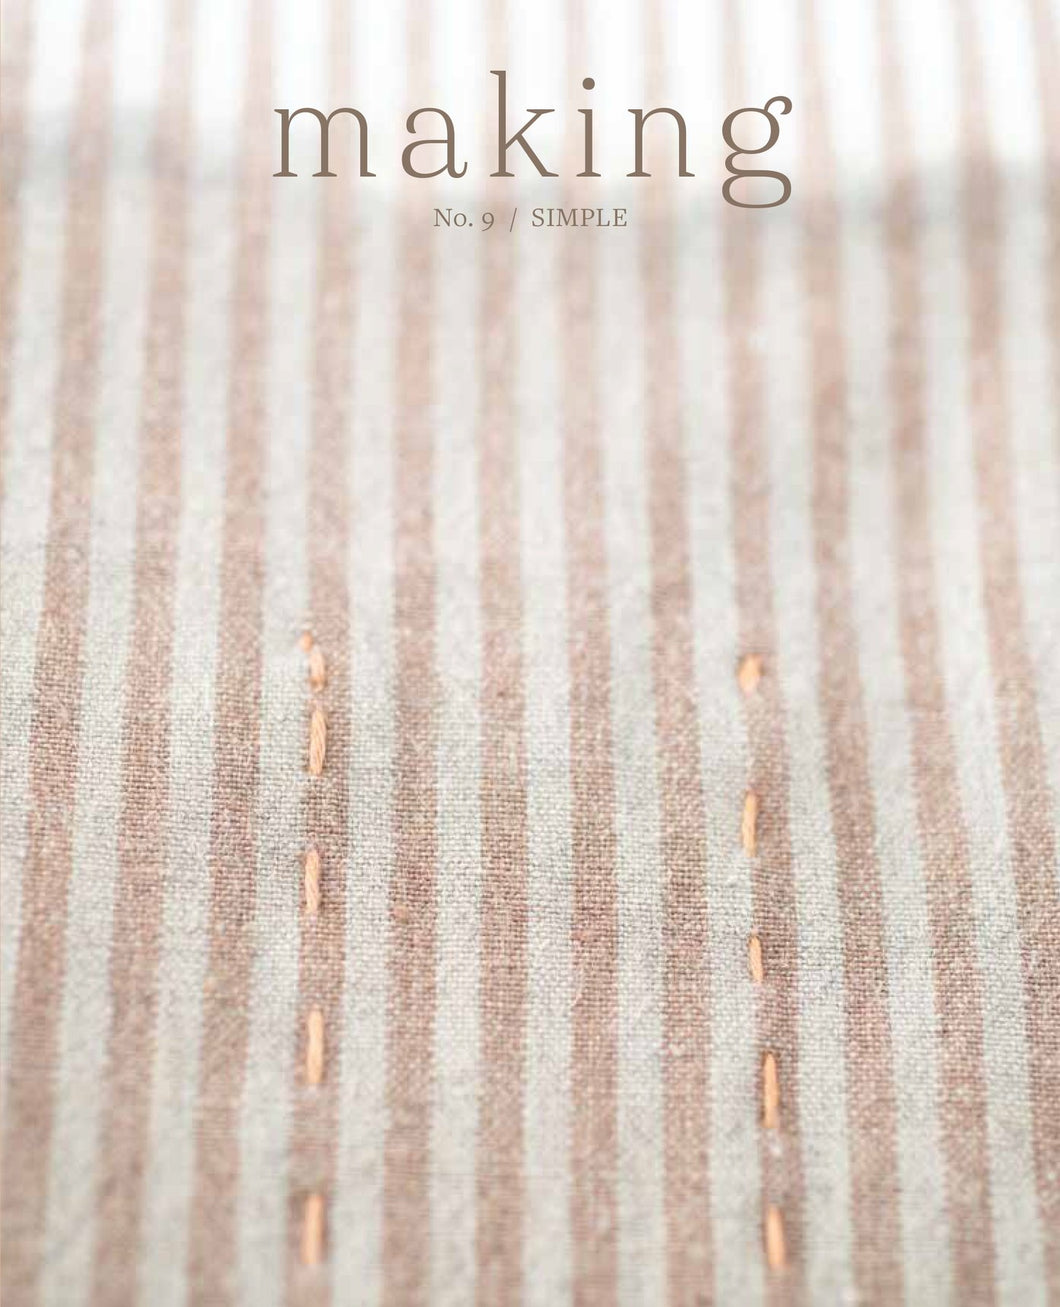 Making Magazine No. 9 / SIMPLE